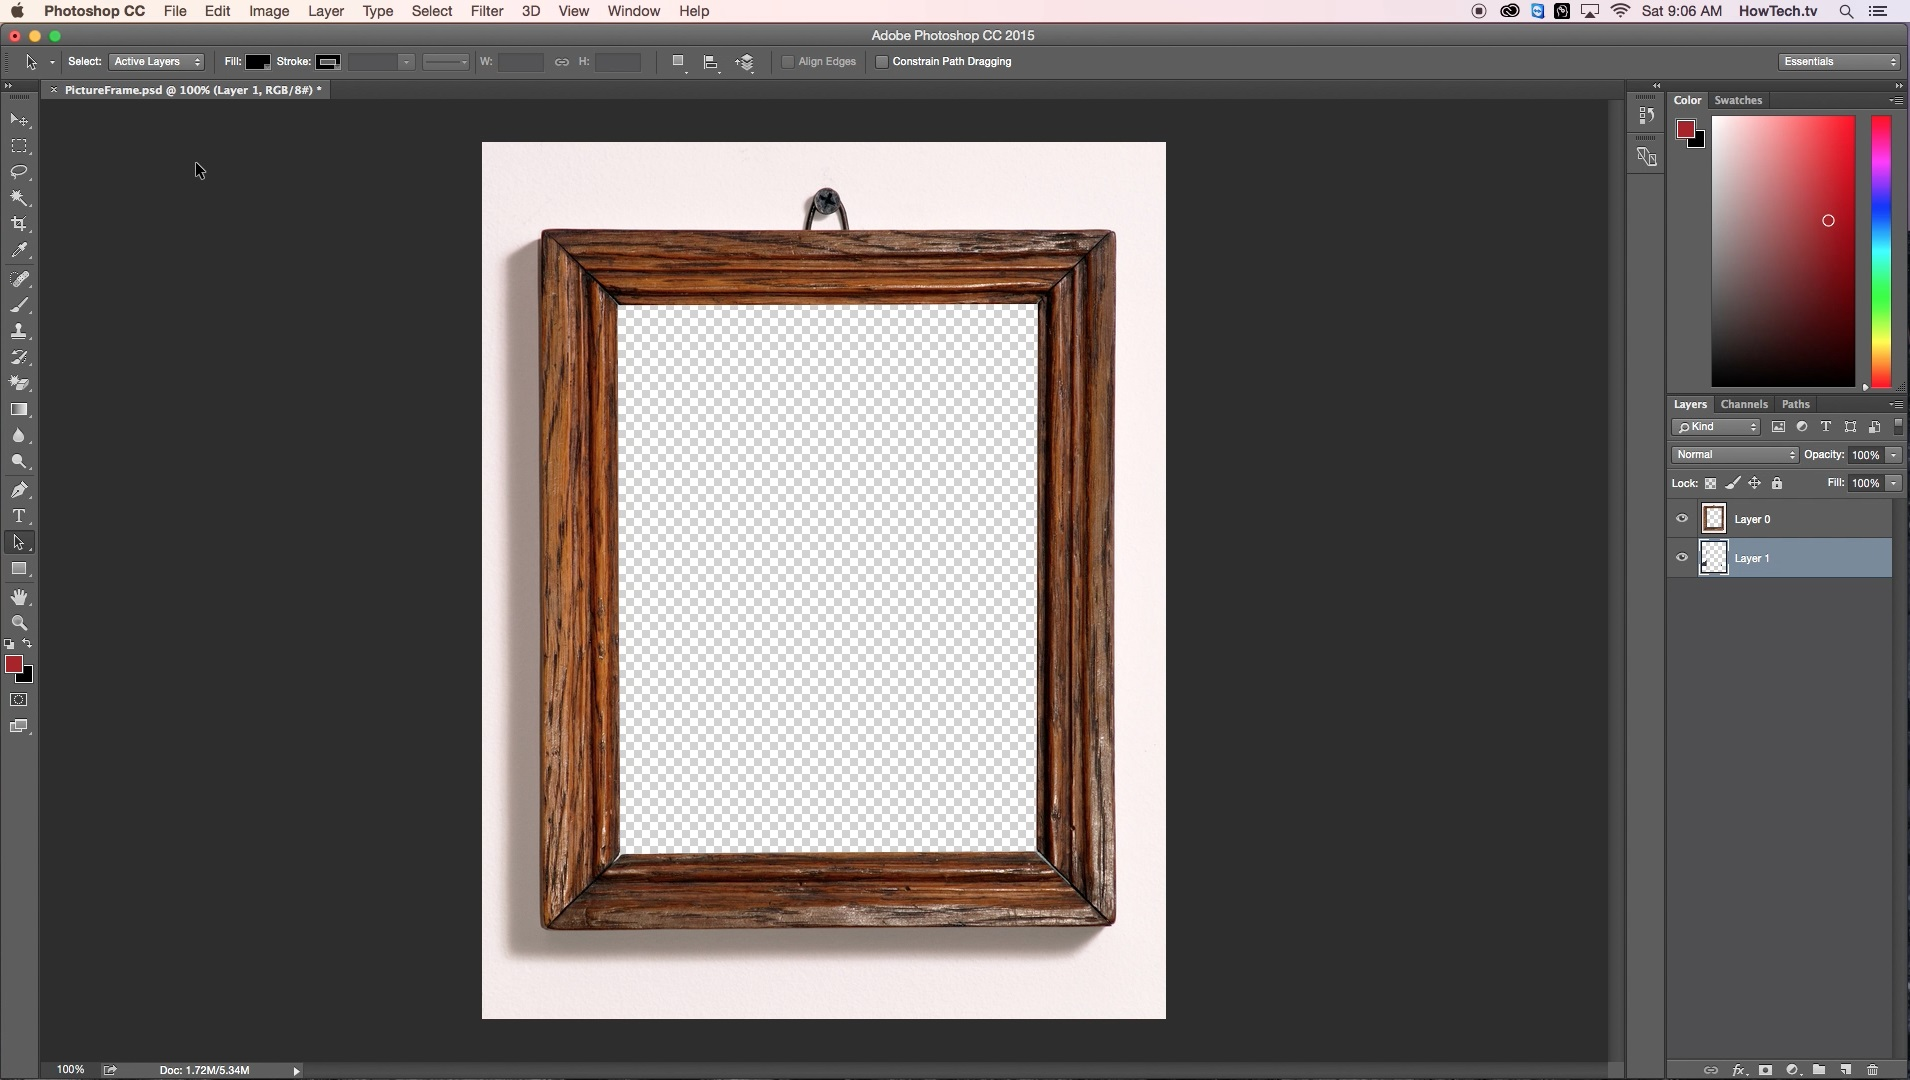 import pictures file to an existing psd in Photoshop